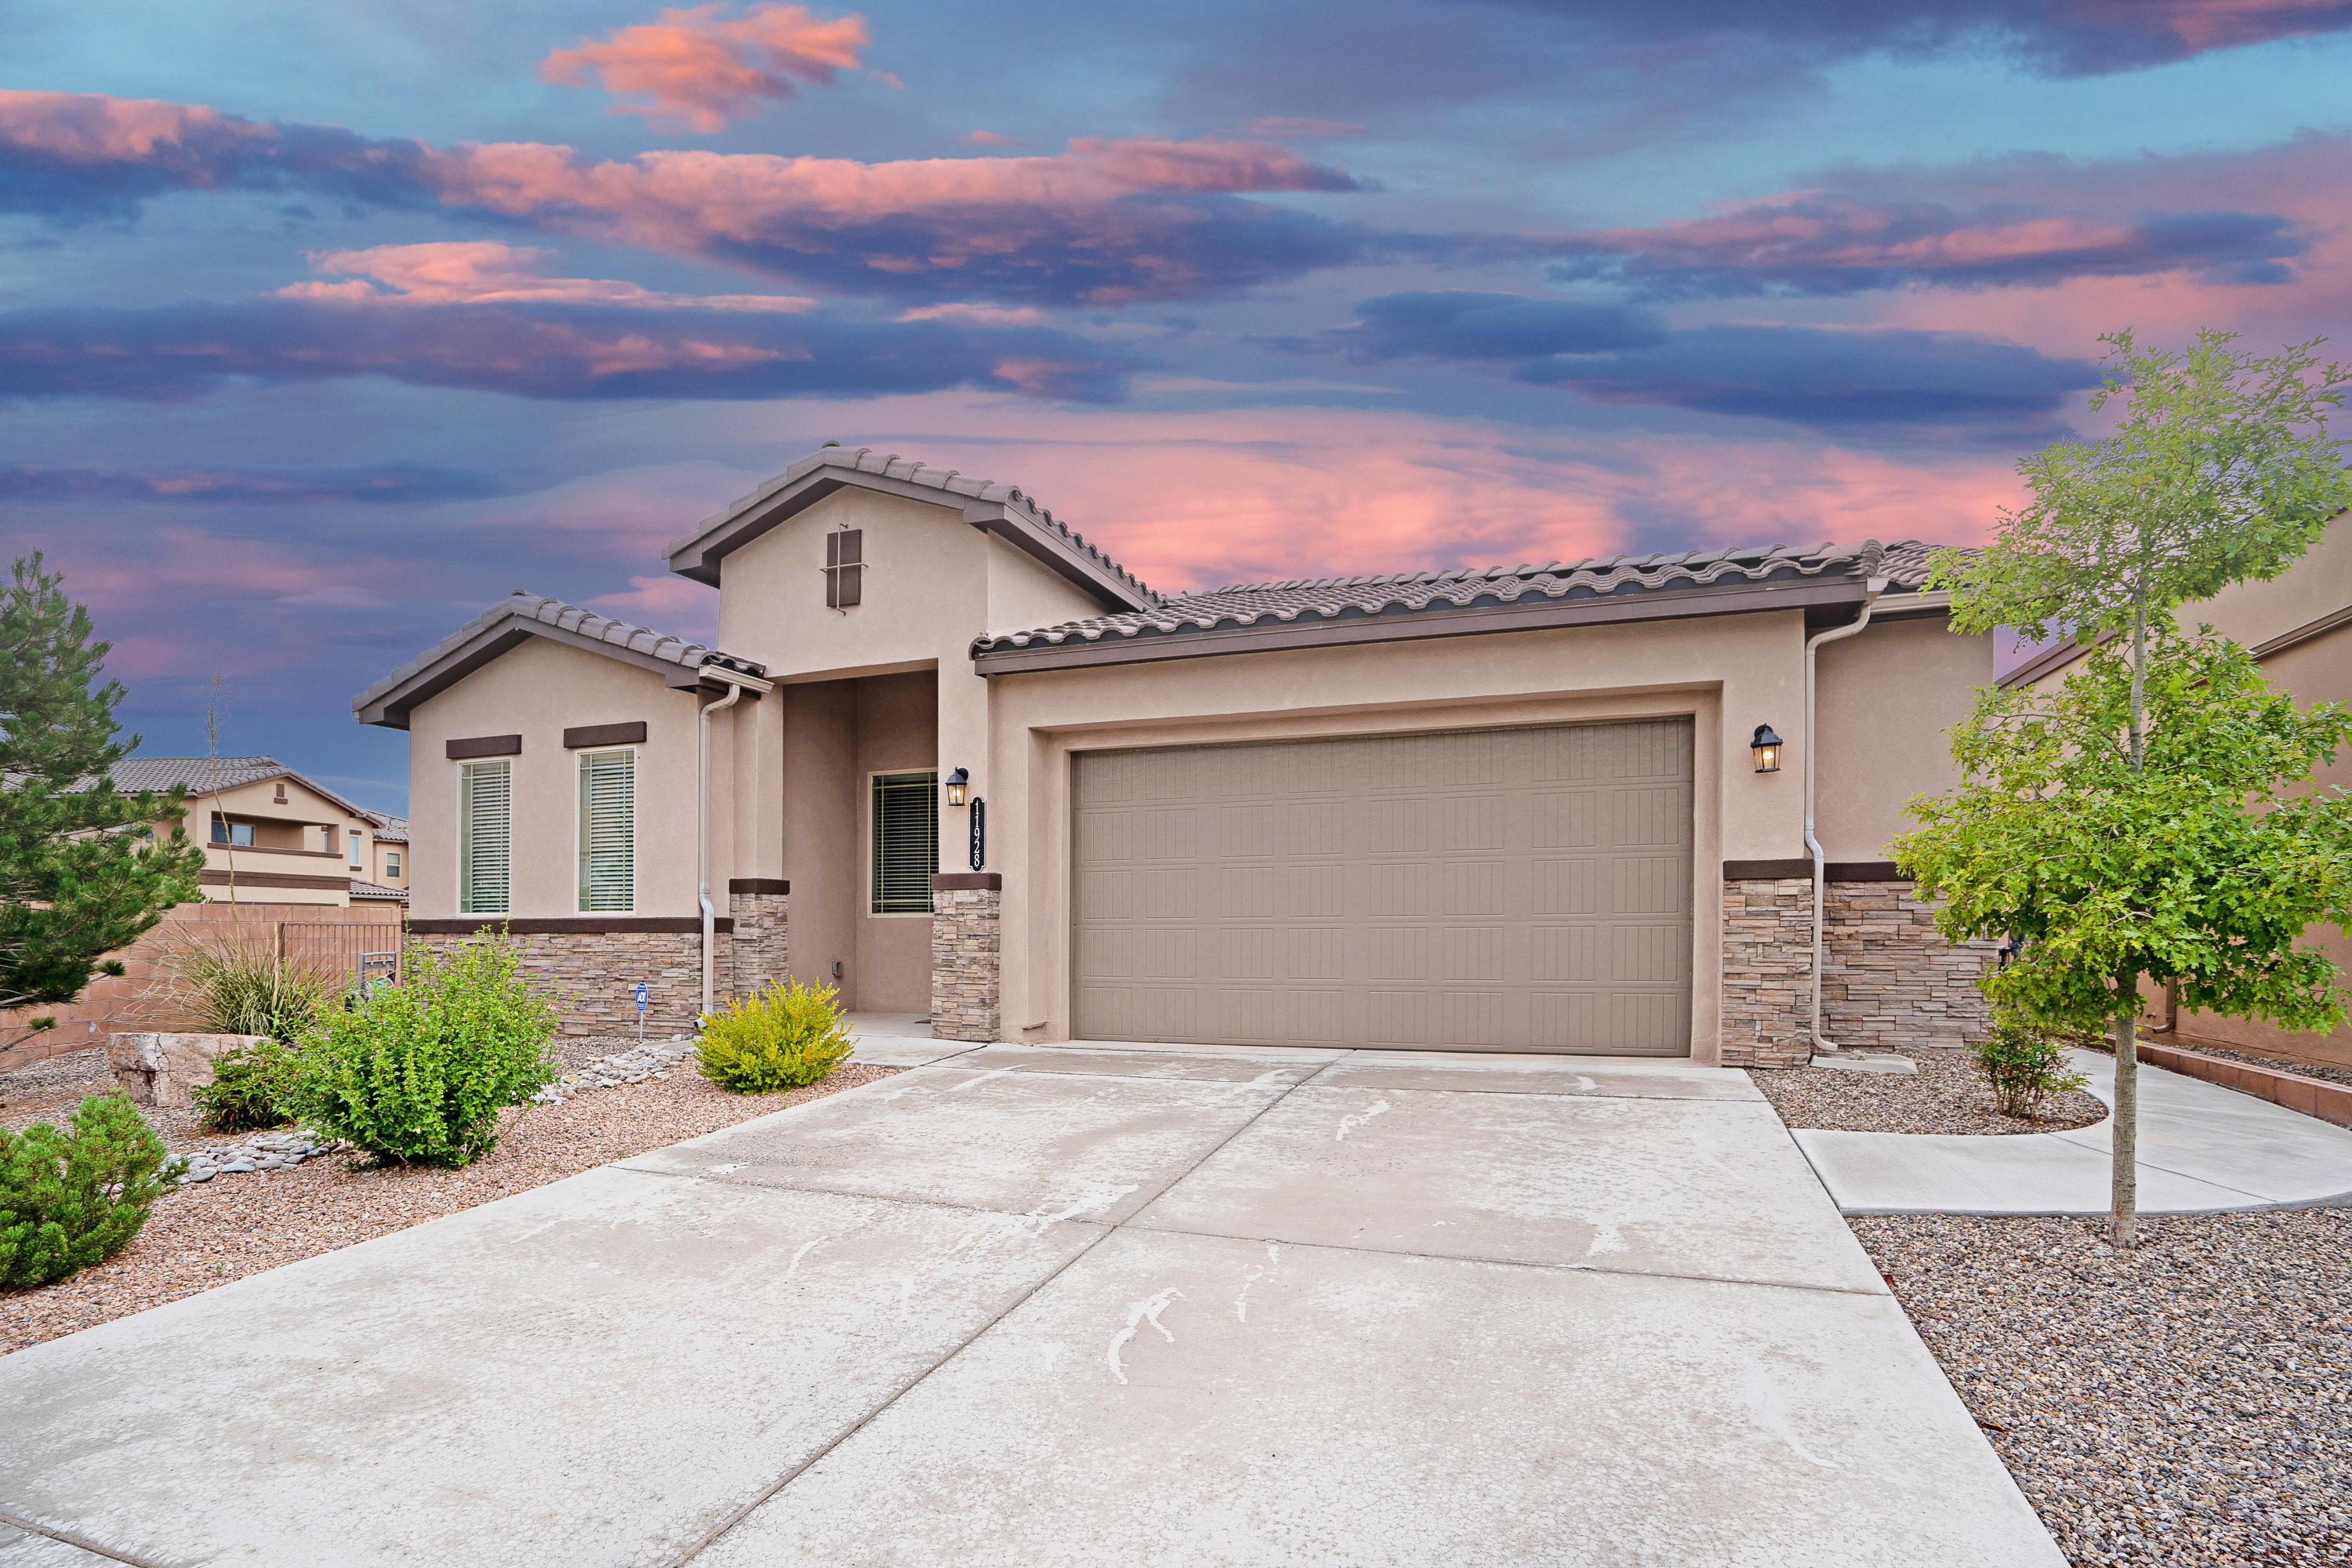 Welcome to this premium corner lot in the beautiful Volterra Neighborhood! Enter through the custom wood door to vaulted ceilings and impeccable tile floors. To the left is a large office or possible fourth bedroom. Down the hall are two bedrooms with their own bathroom, and the open kitchen has gorgeous floor to ceiling cabinetry, large granite island, and stainless steel appliances! The master bedroom is oversized and the spa-like master suite has a garden tub and amazing walk in closet. Laundry is in its own service room and garage is oversized! Entertain in the living room, cozy up next to the fireplace, and enjoy the sunsets and sunrises in the backyard under the covered patio. Astroturf and xeriscaping make maintenance a dream. Schedule a showing today!